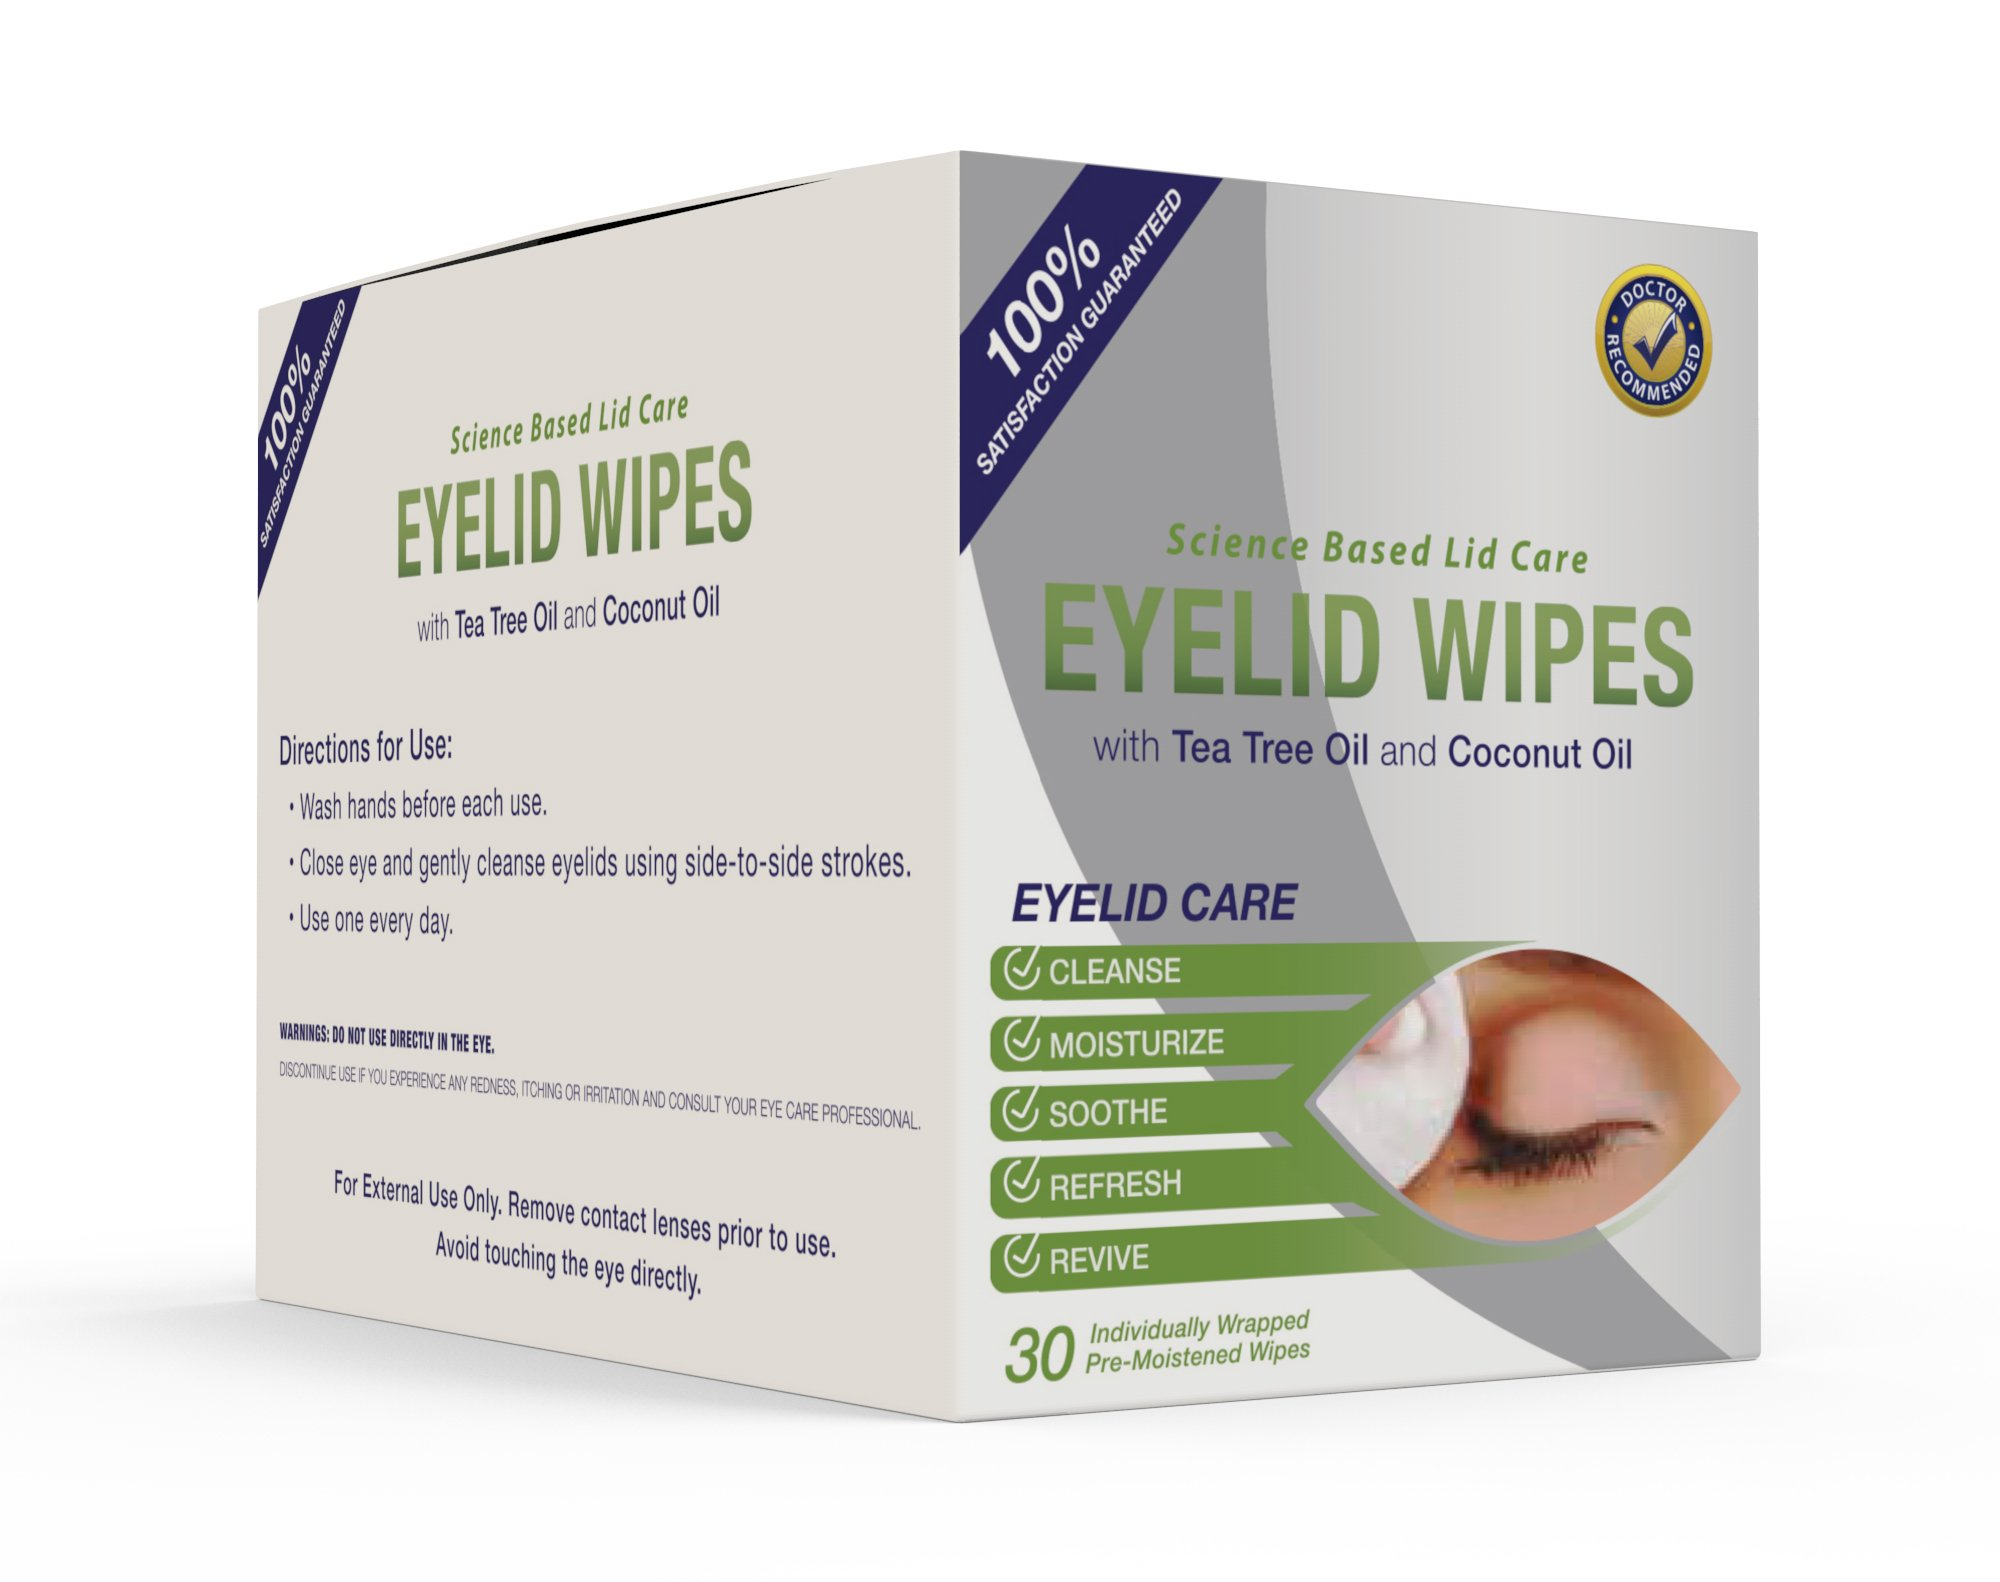 Eyelid Wipes with Tea Tree and Coconut Oil - Cleansing Eye Wipes for People Itchy Eyes - Box of 30 Natural Eye Wipes